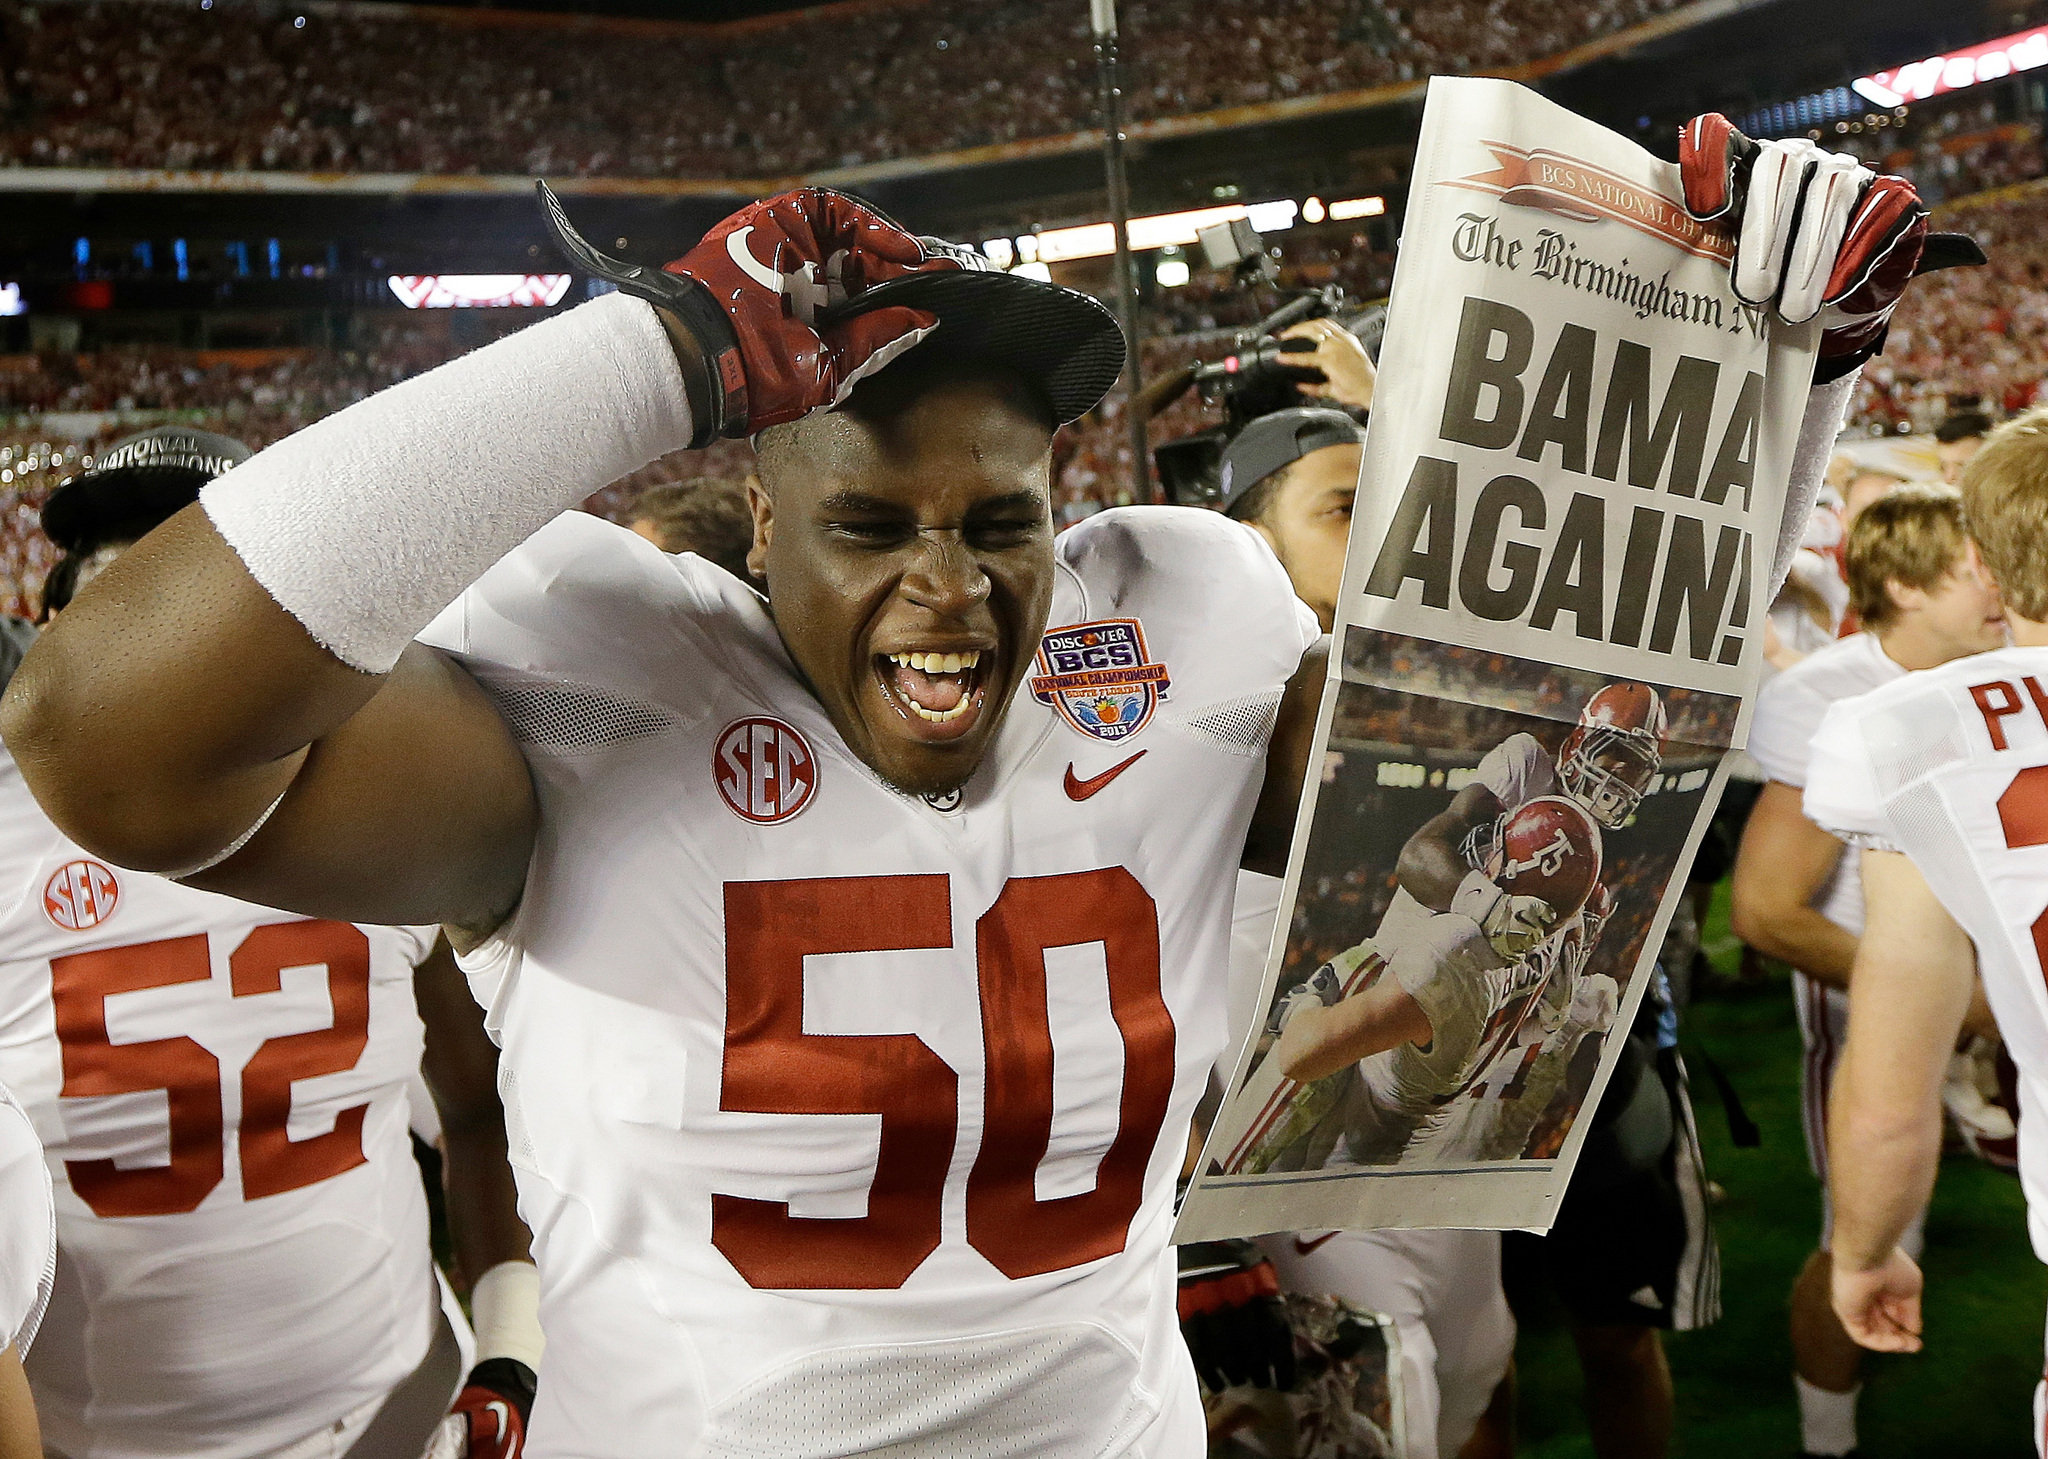 BCS Championship:Bama do it again!